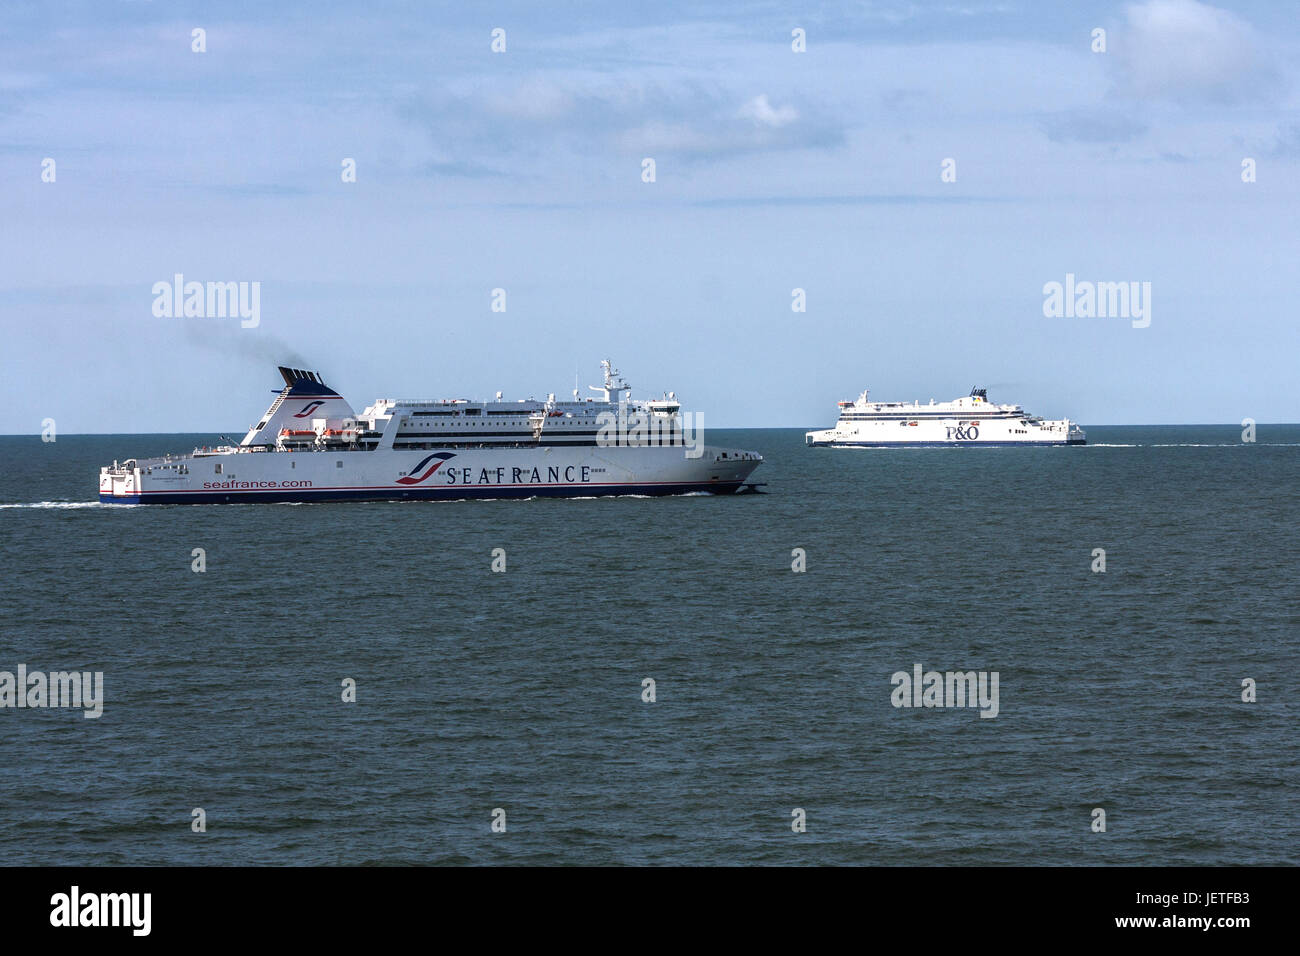 Ferries crossing the Channel between Dunkerque and Dover - Stock Image